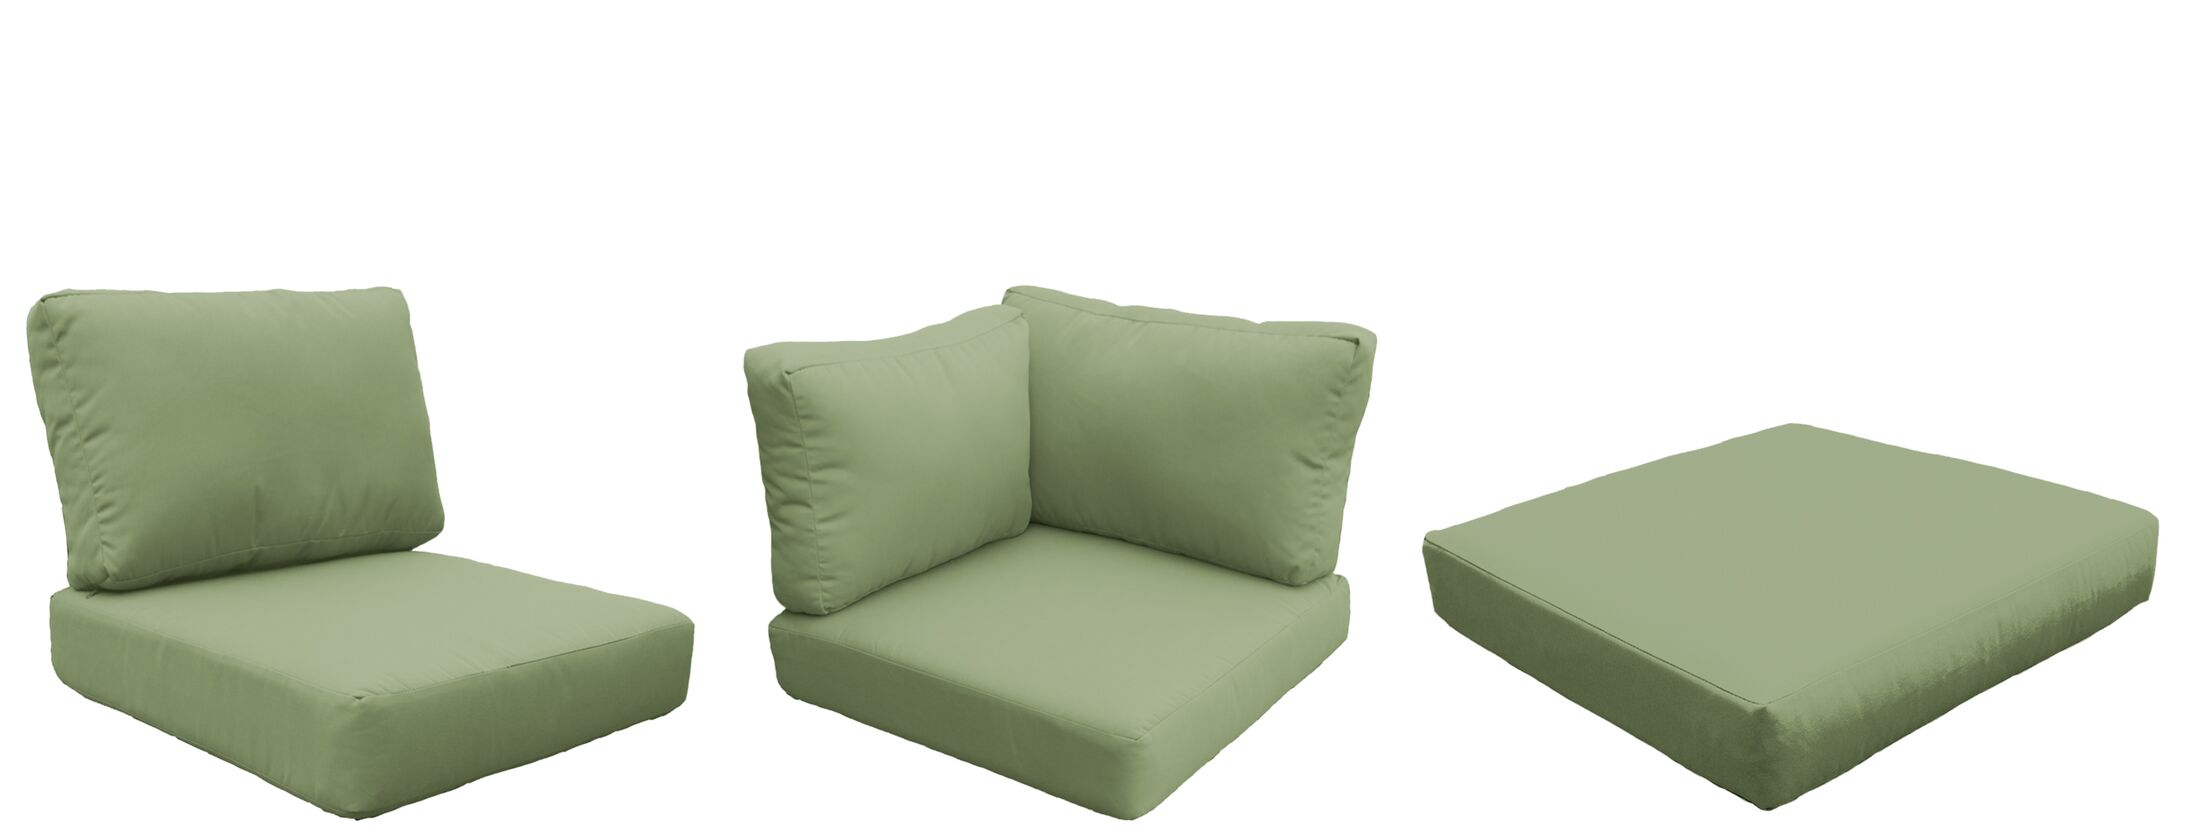 Barbados 9 Piece Outdoor Cushion Set Fabric: Cilantro